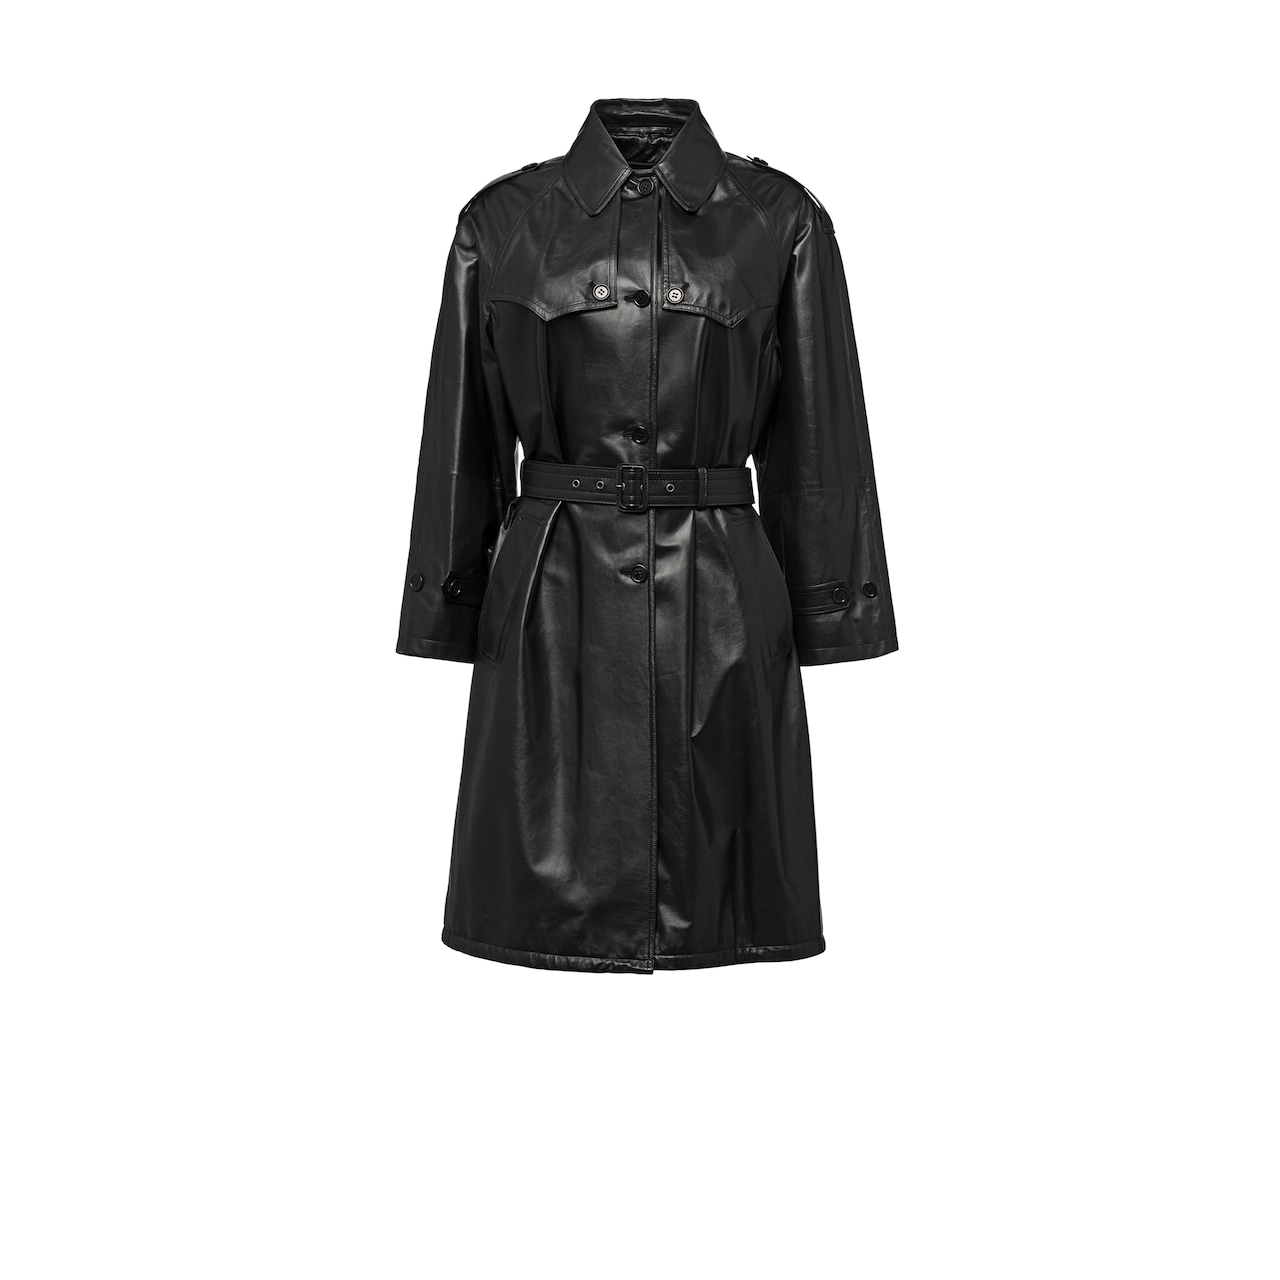 Light nappa leather trench coat